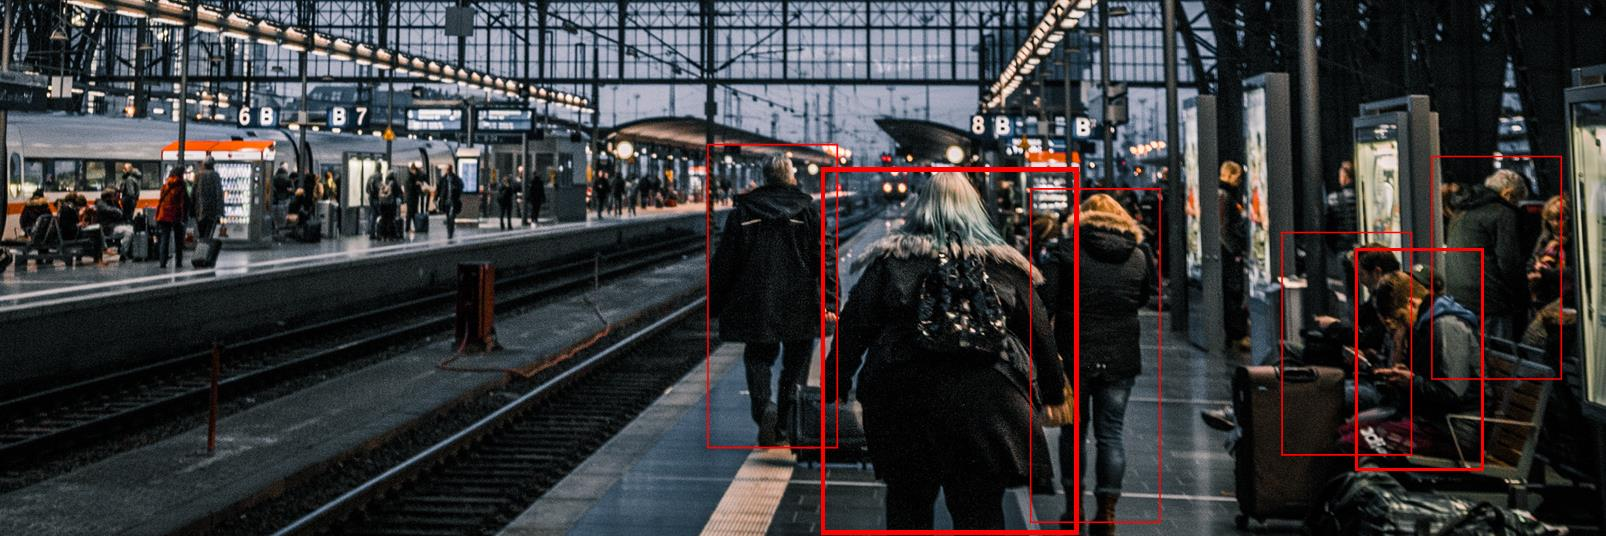 Video Analytics at train station